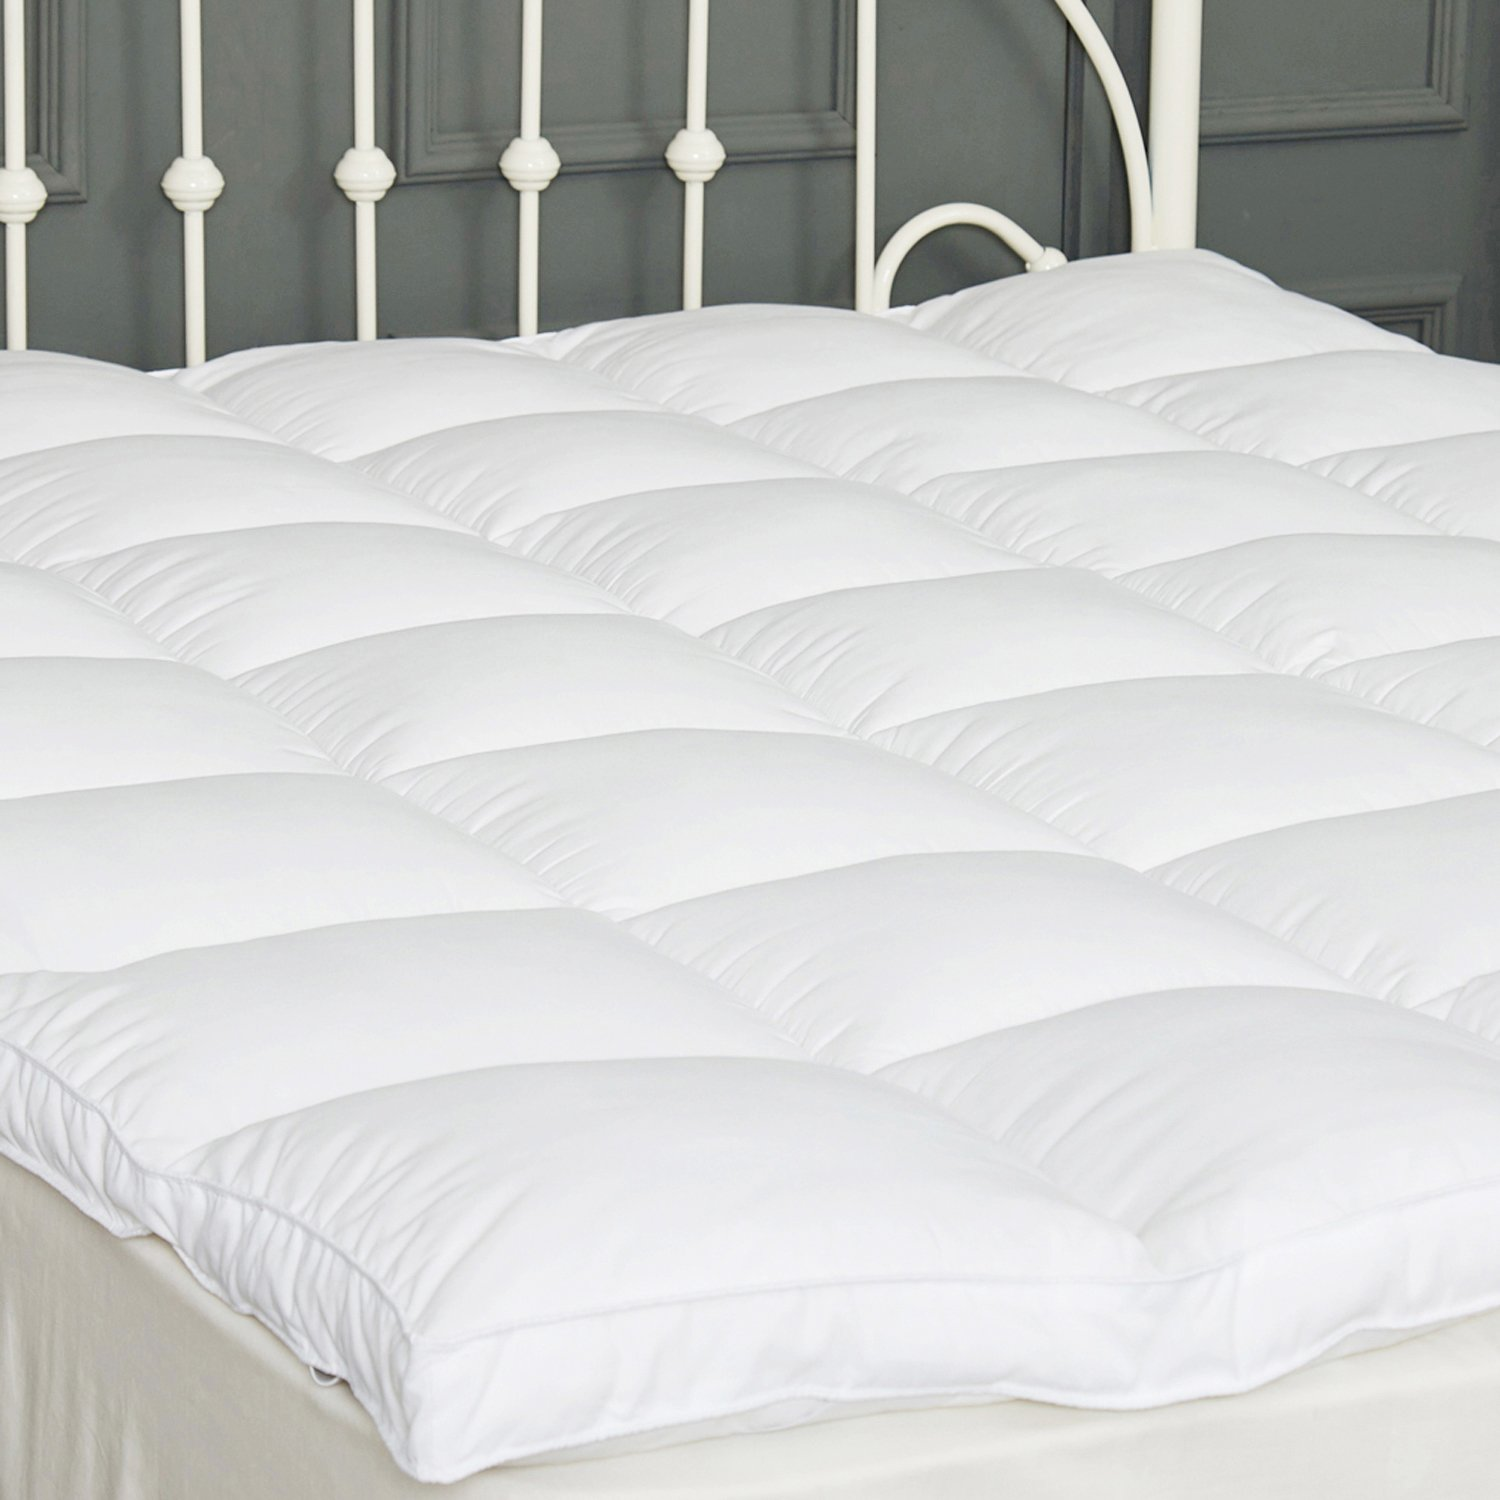 King Mattress Topper Down Alternative, Quilted Pillow Top Mattress Pad with 2'' Thick Plush Hypoallergenic Microfiber, Hotel Quality, 5 Year Warranty